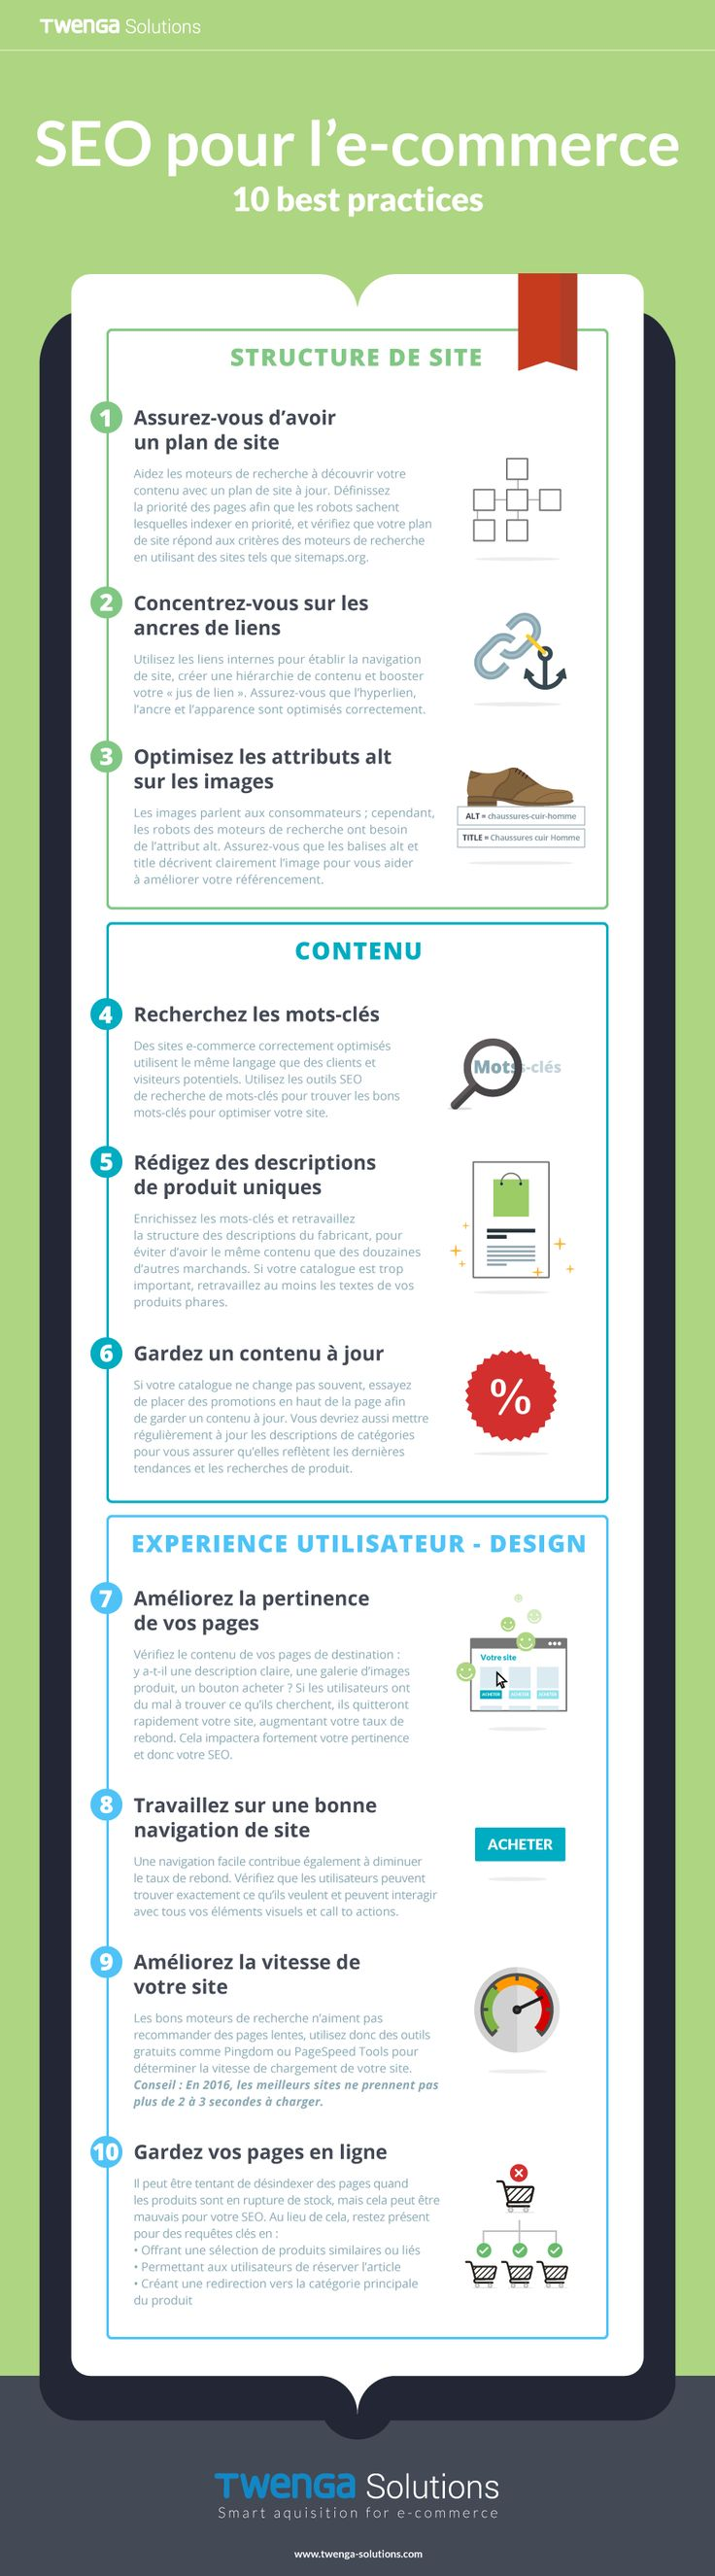 infographie-optimisation-seo-e-commerce